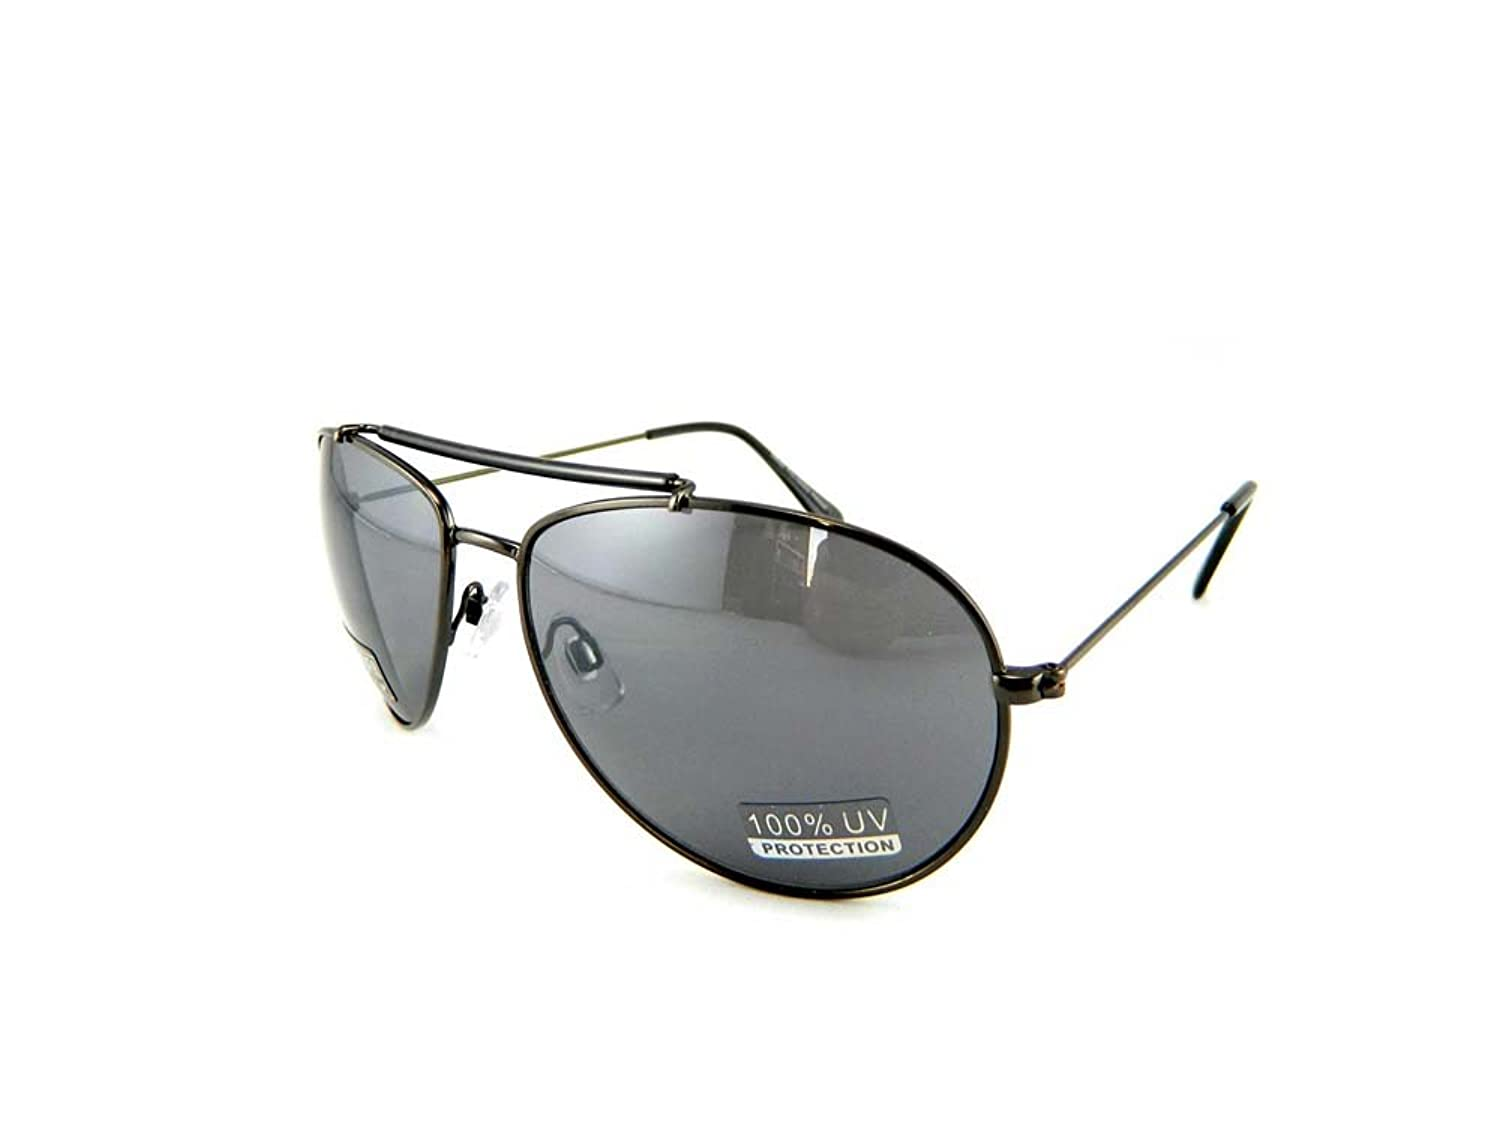 1335d3692f5 New Promotional Budget Teardrop Metal Aviator Sunglasses 85%OFF ...